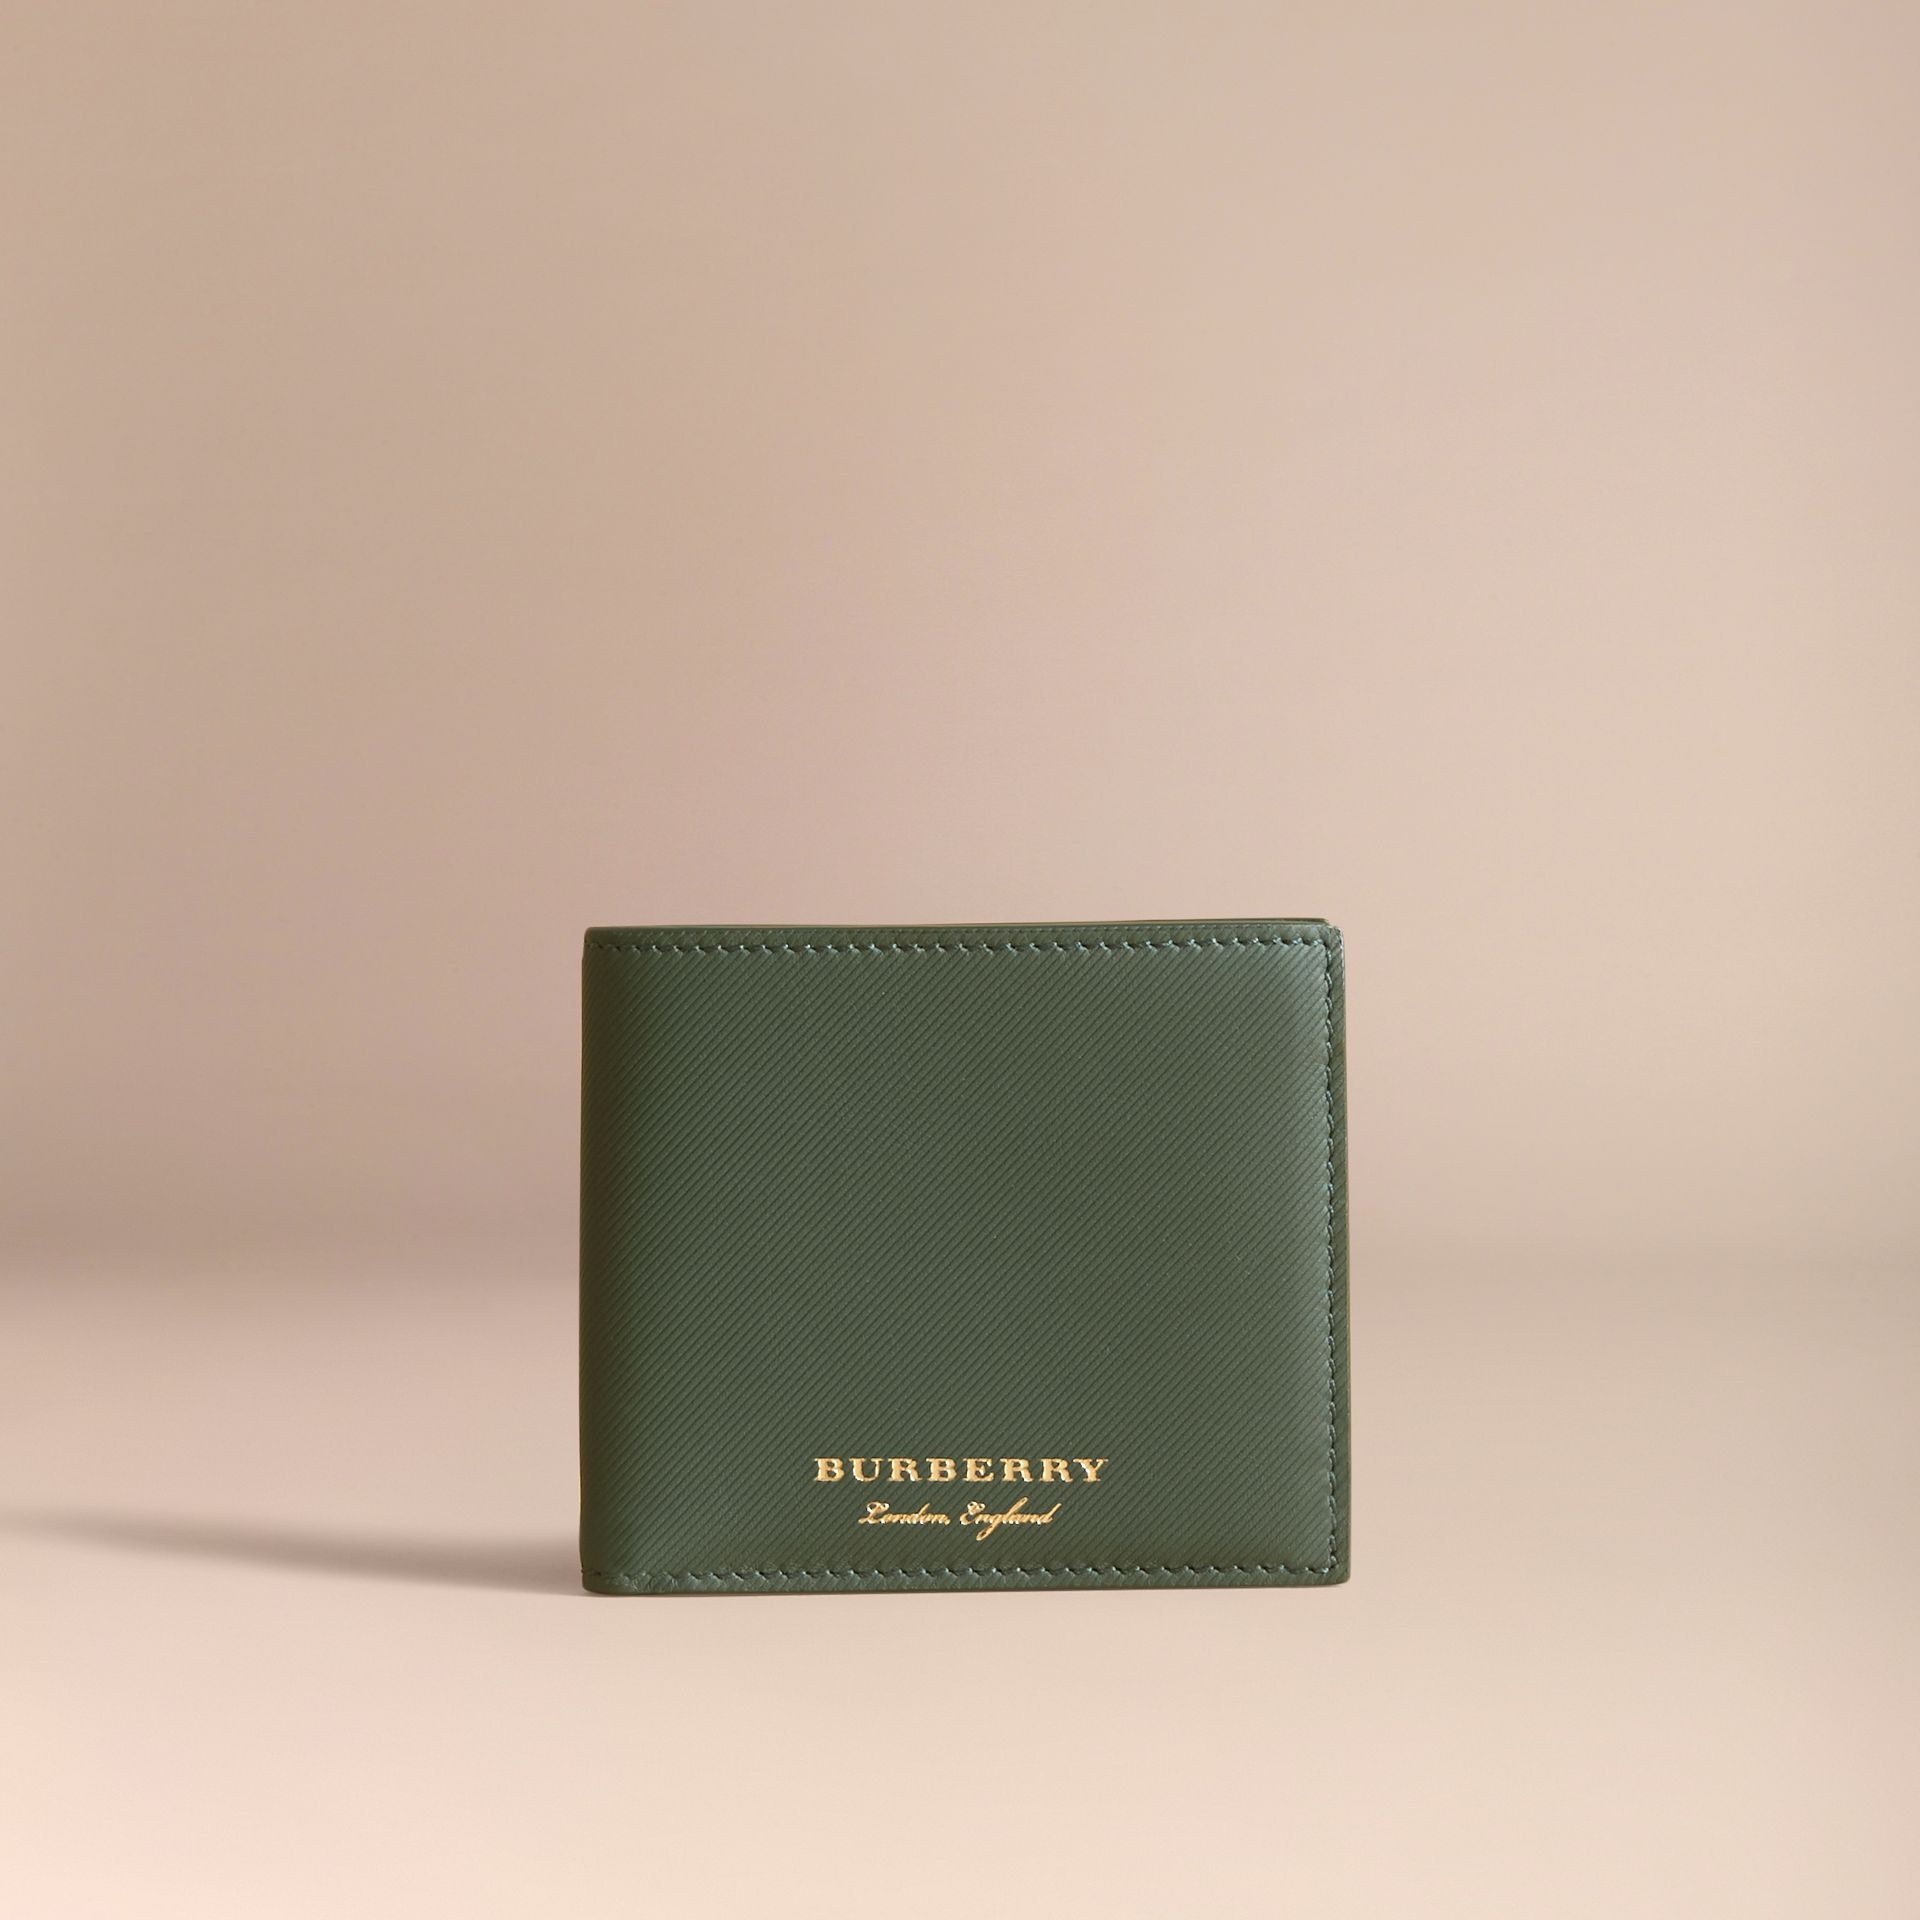 Trench Leather International Bifold Wallet in Dark Forest Green - Men | Burberry Hong Kong - gallery image 6